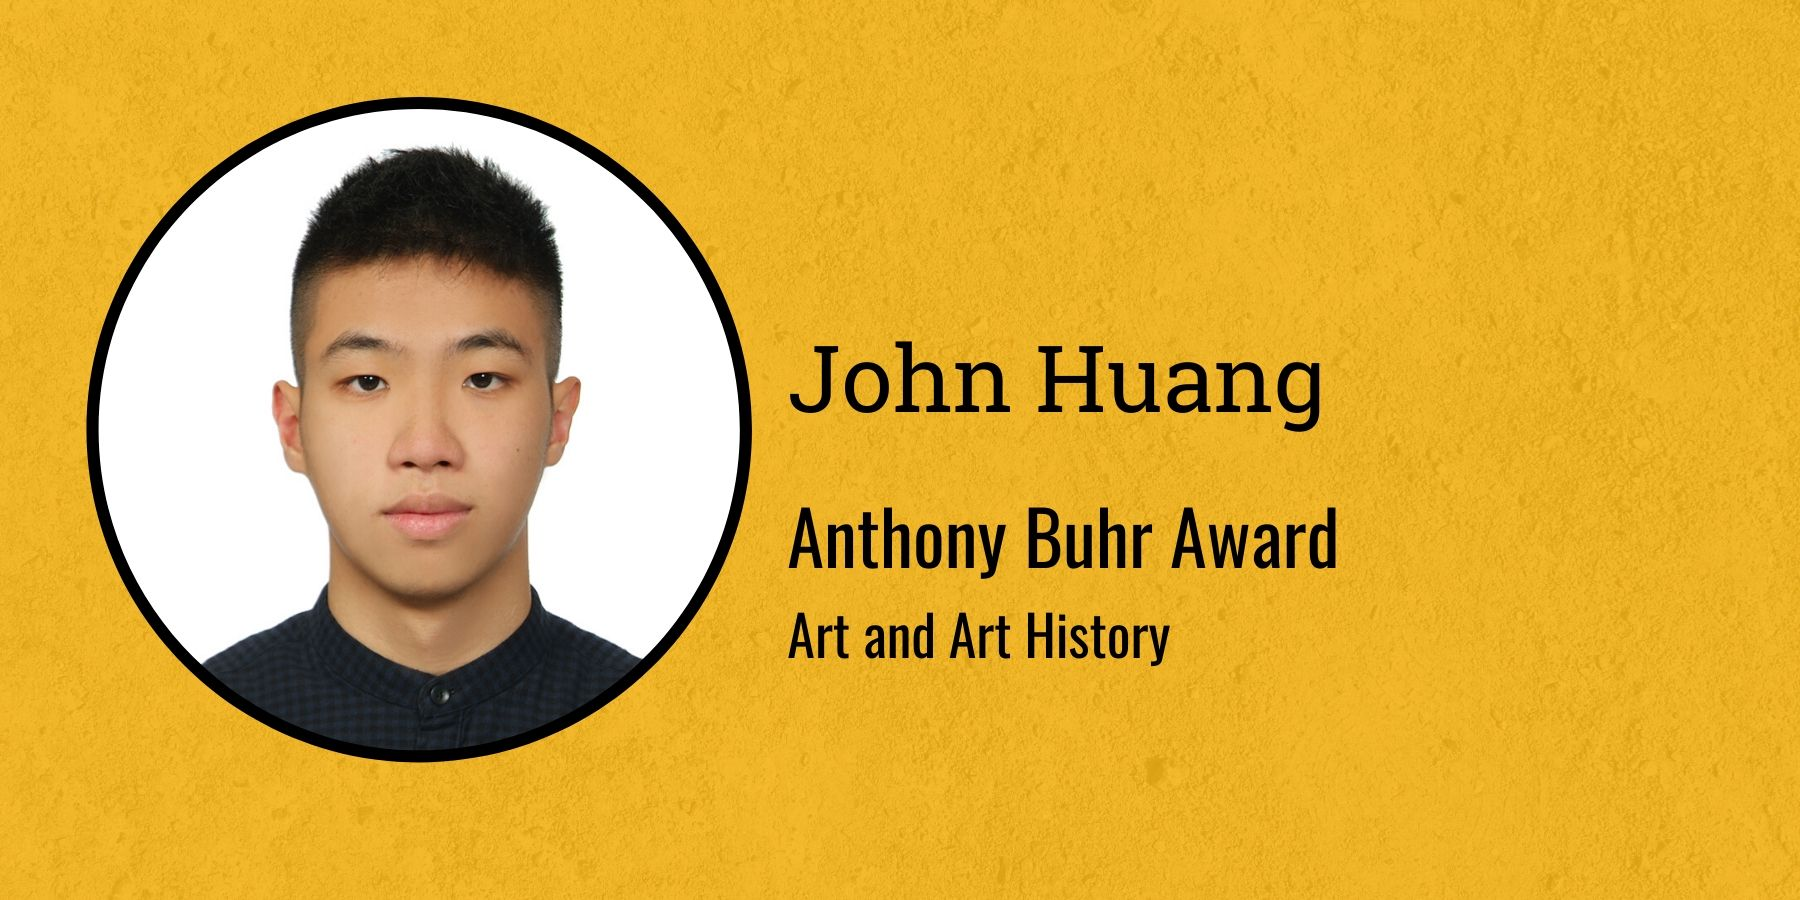 Photo of John Huang and text Anthony Buhr Award, Art and Art History